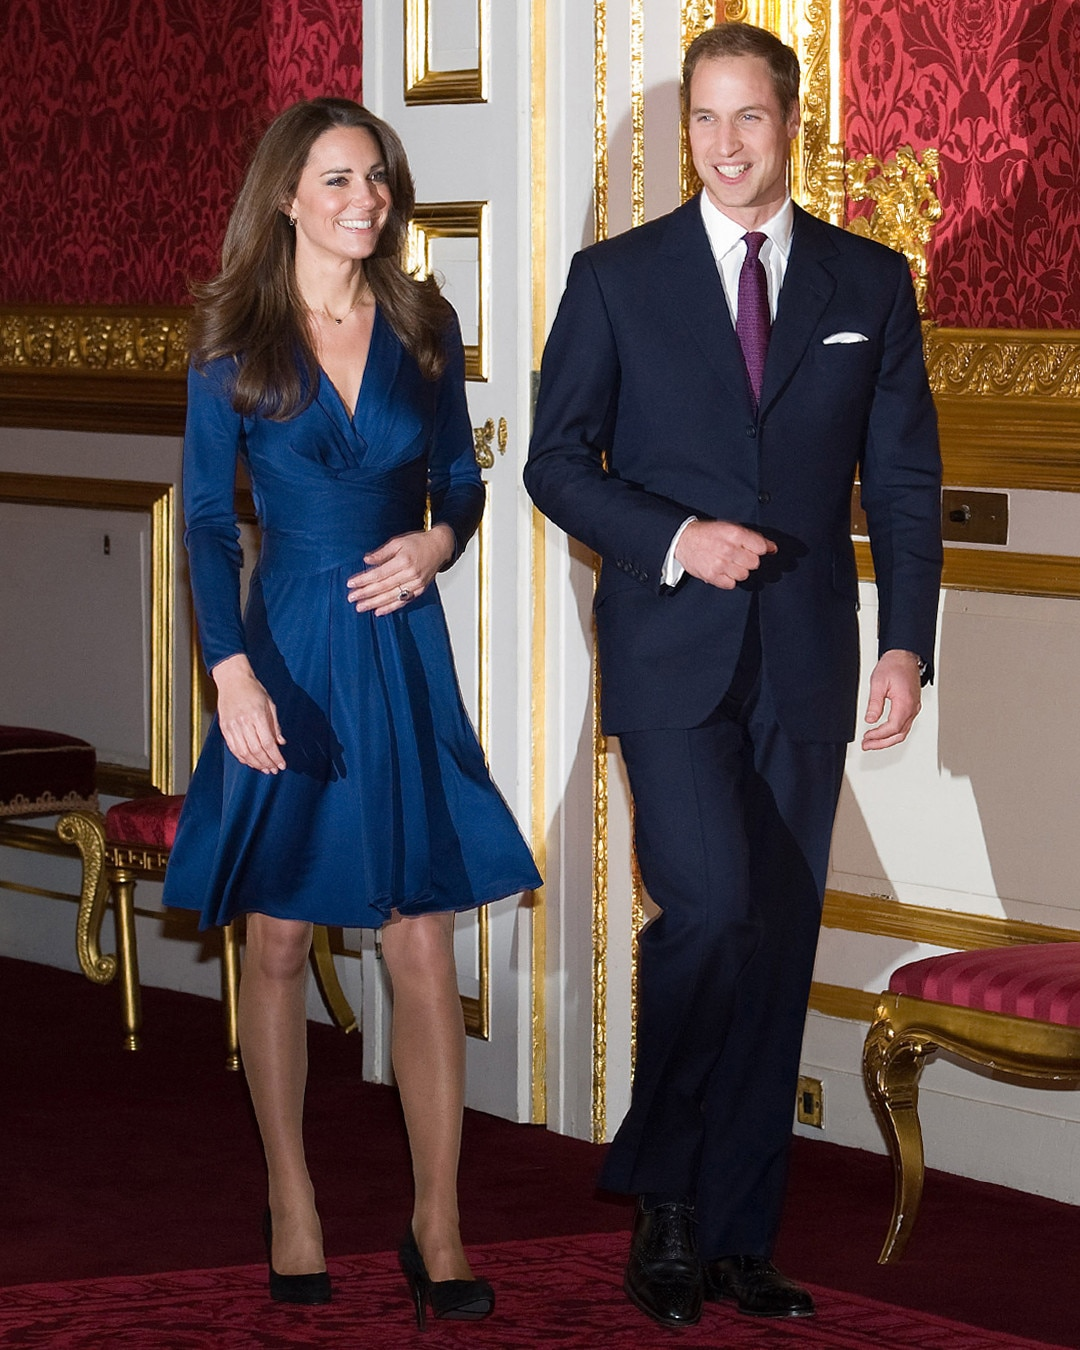 Kate Middletons Engagement Dress Is Now Available in Several Colors forecasting